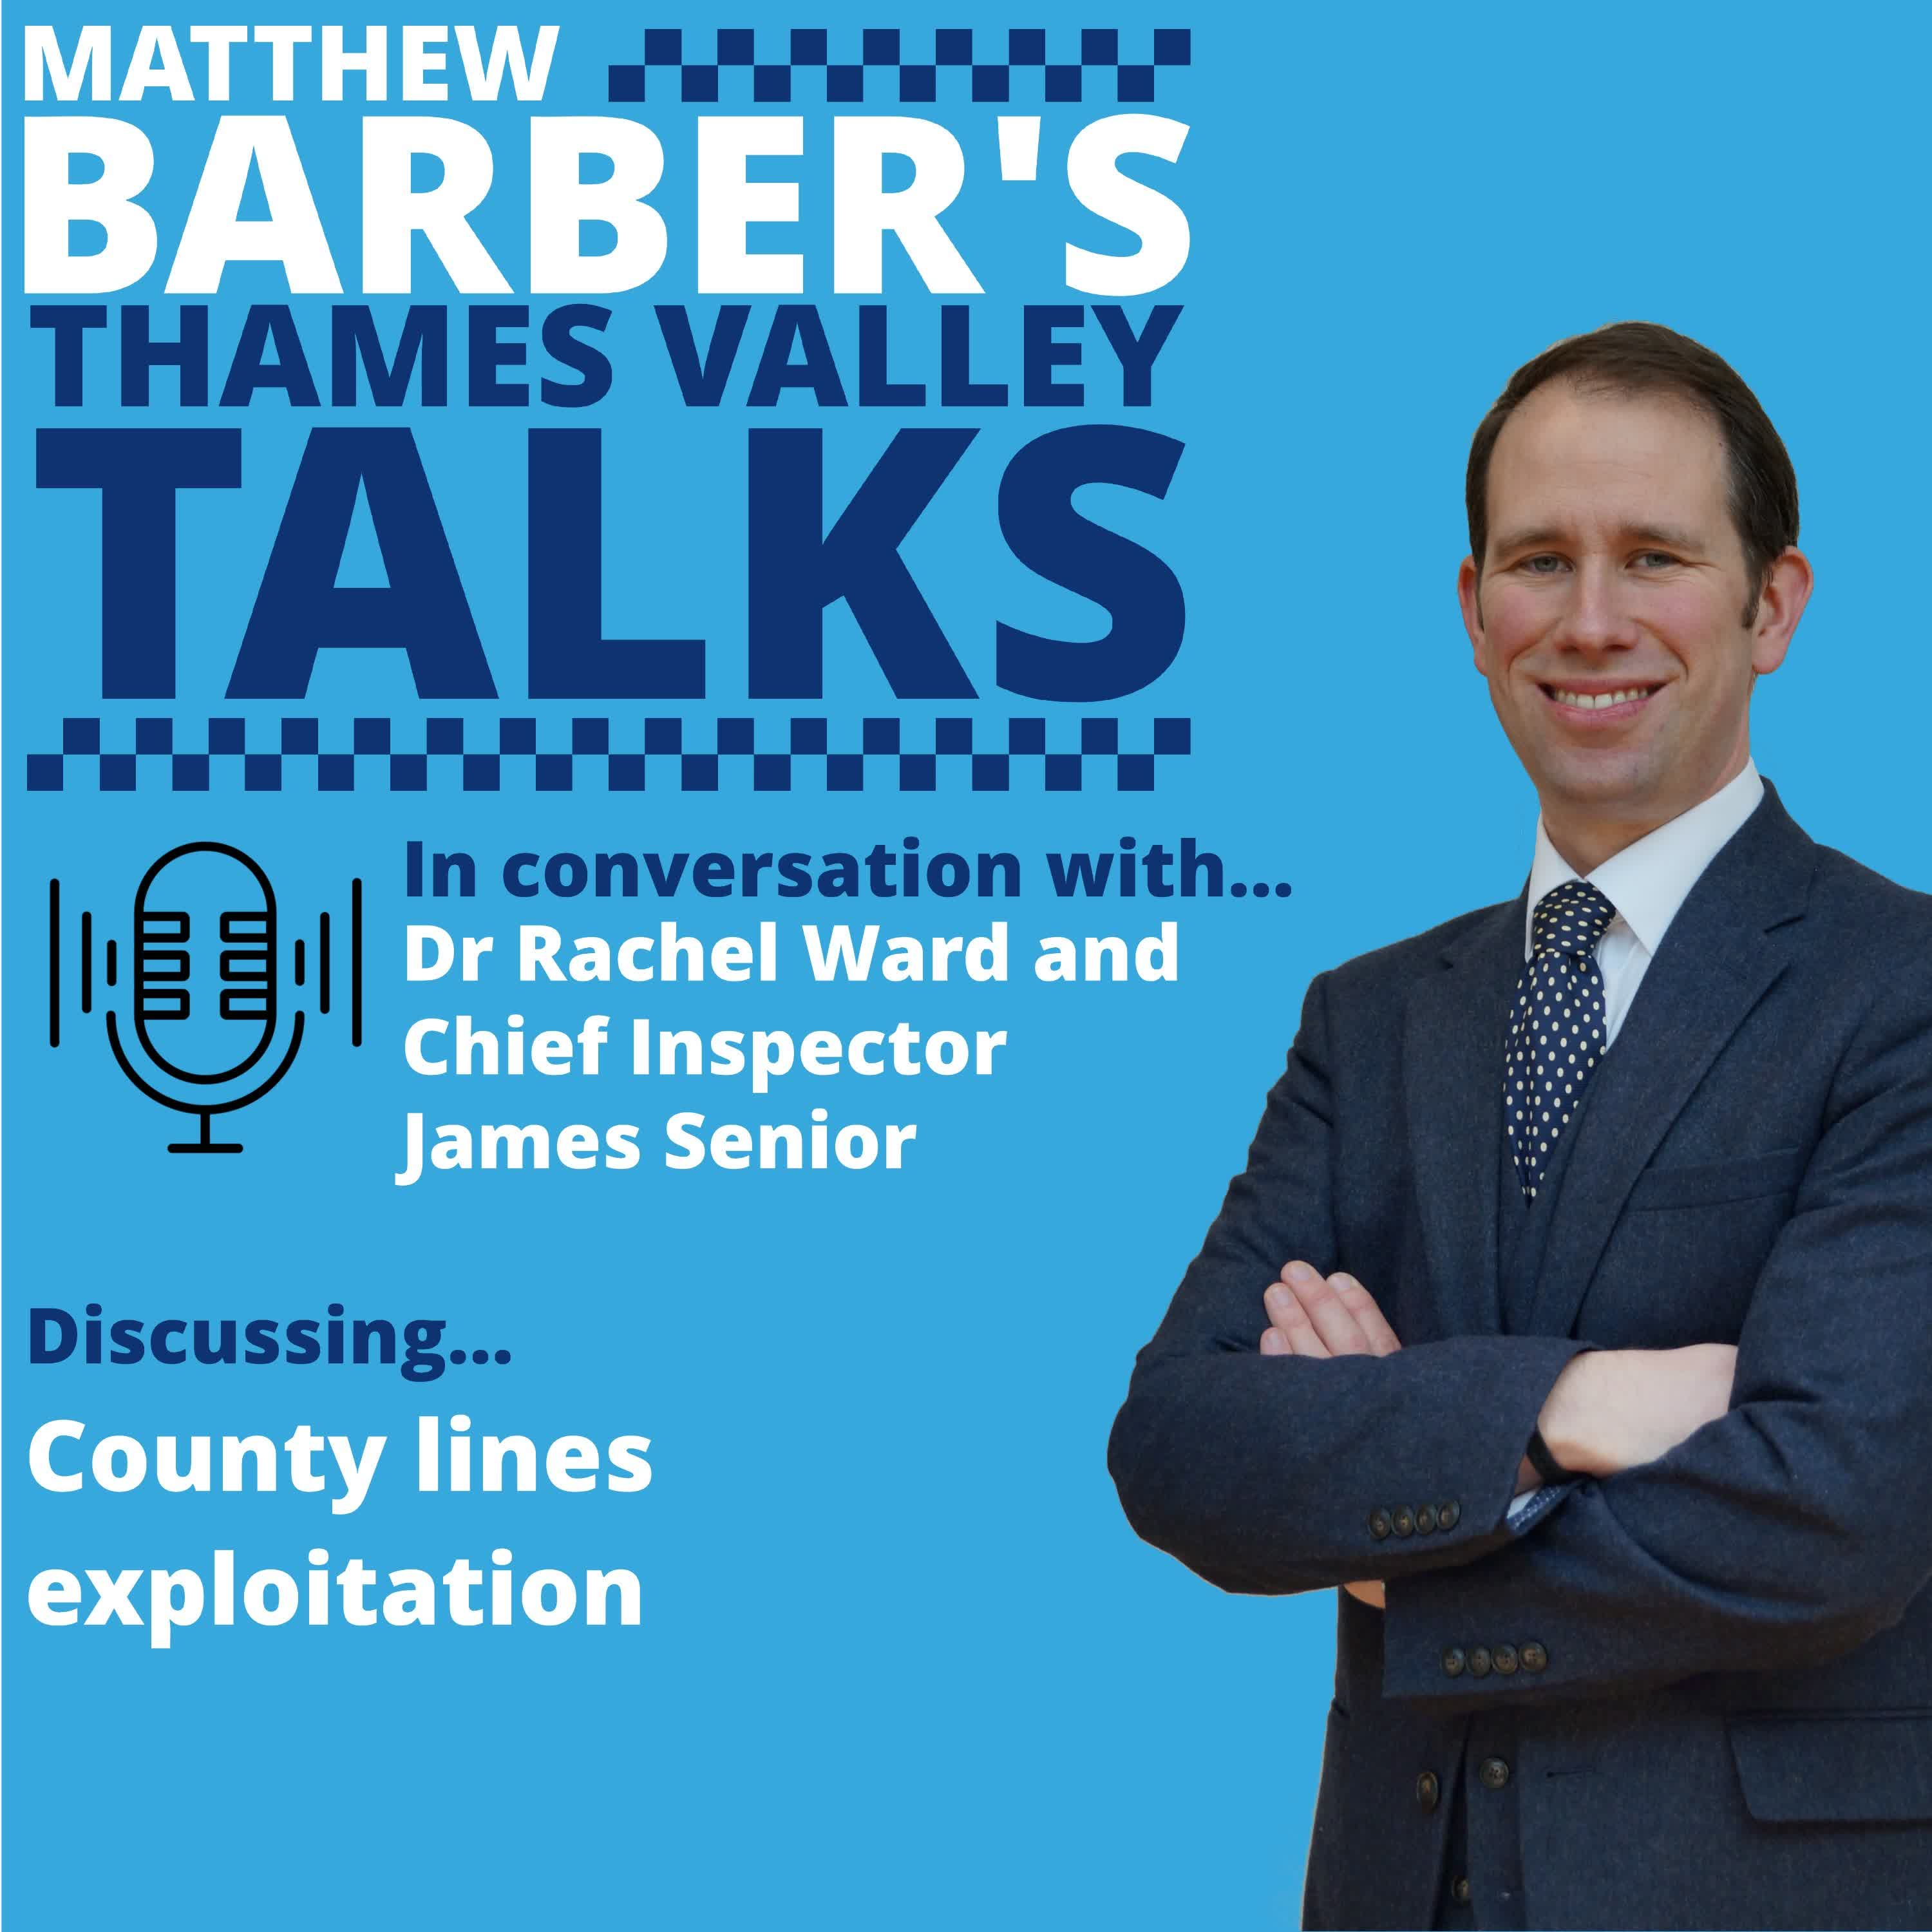 County Lines exploitation - in conversation with Chief Inspector James Senior and Dr Rachel Ward